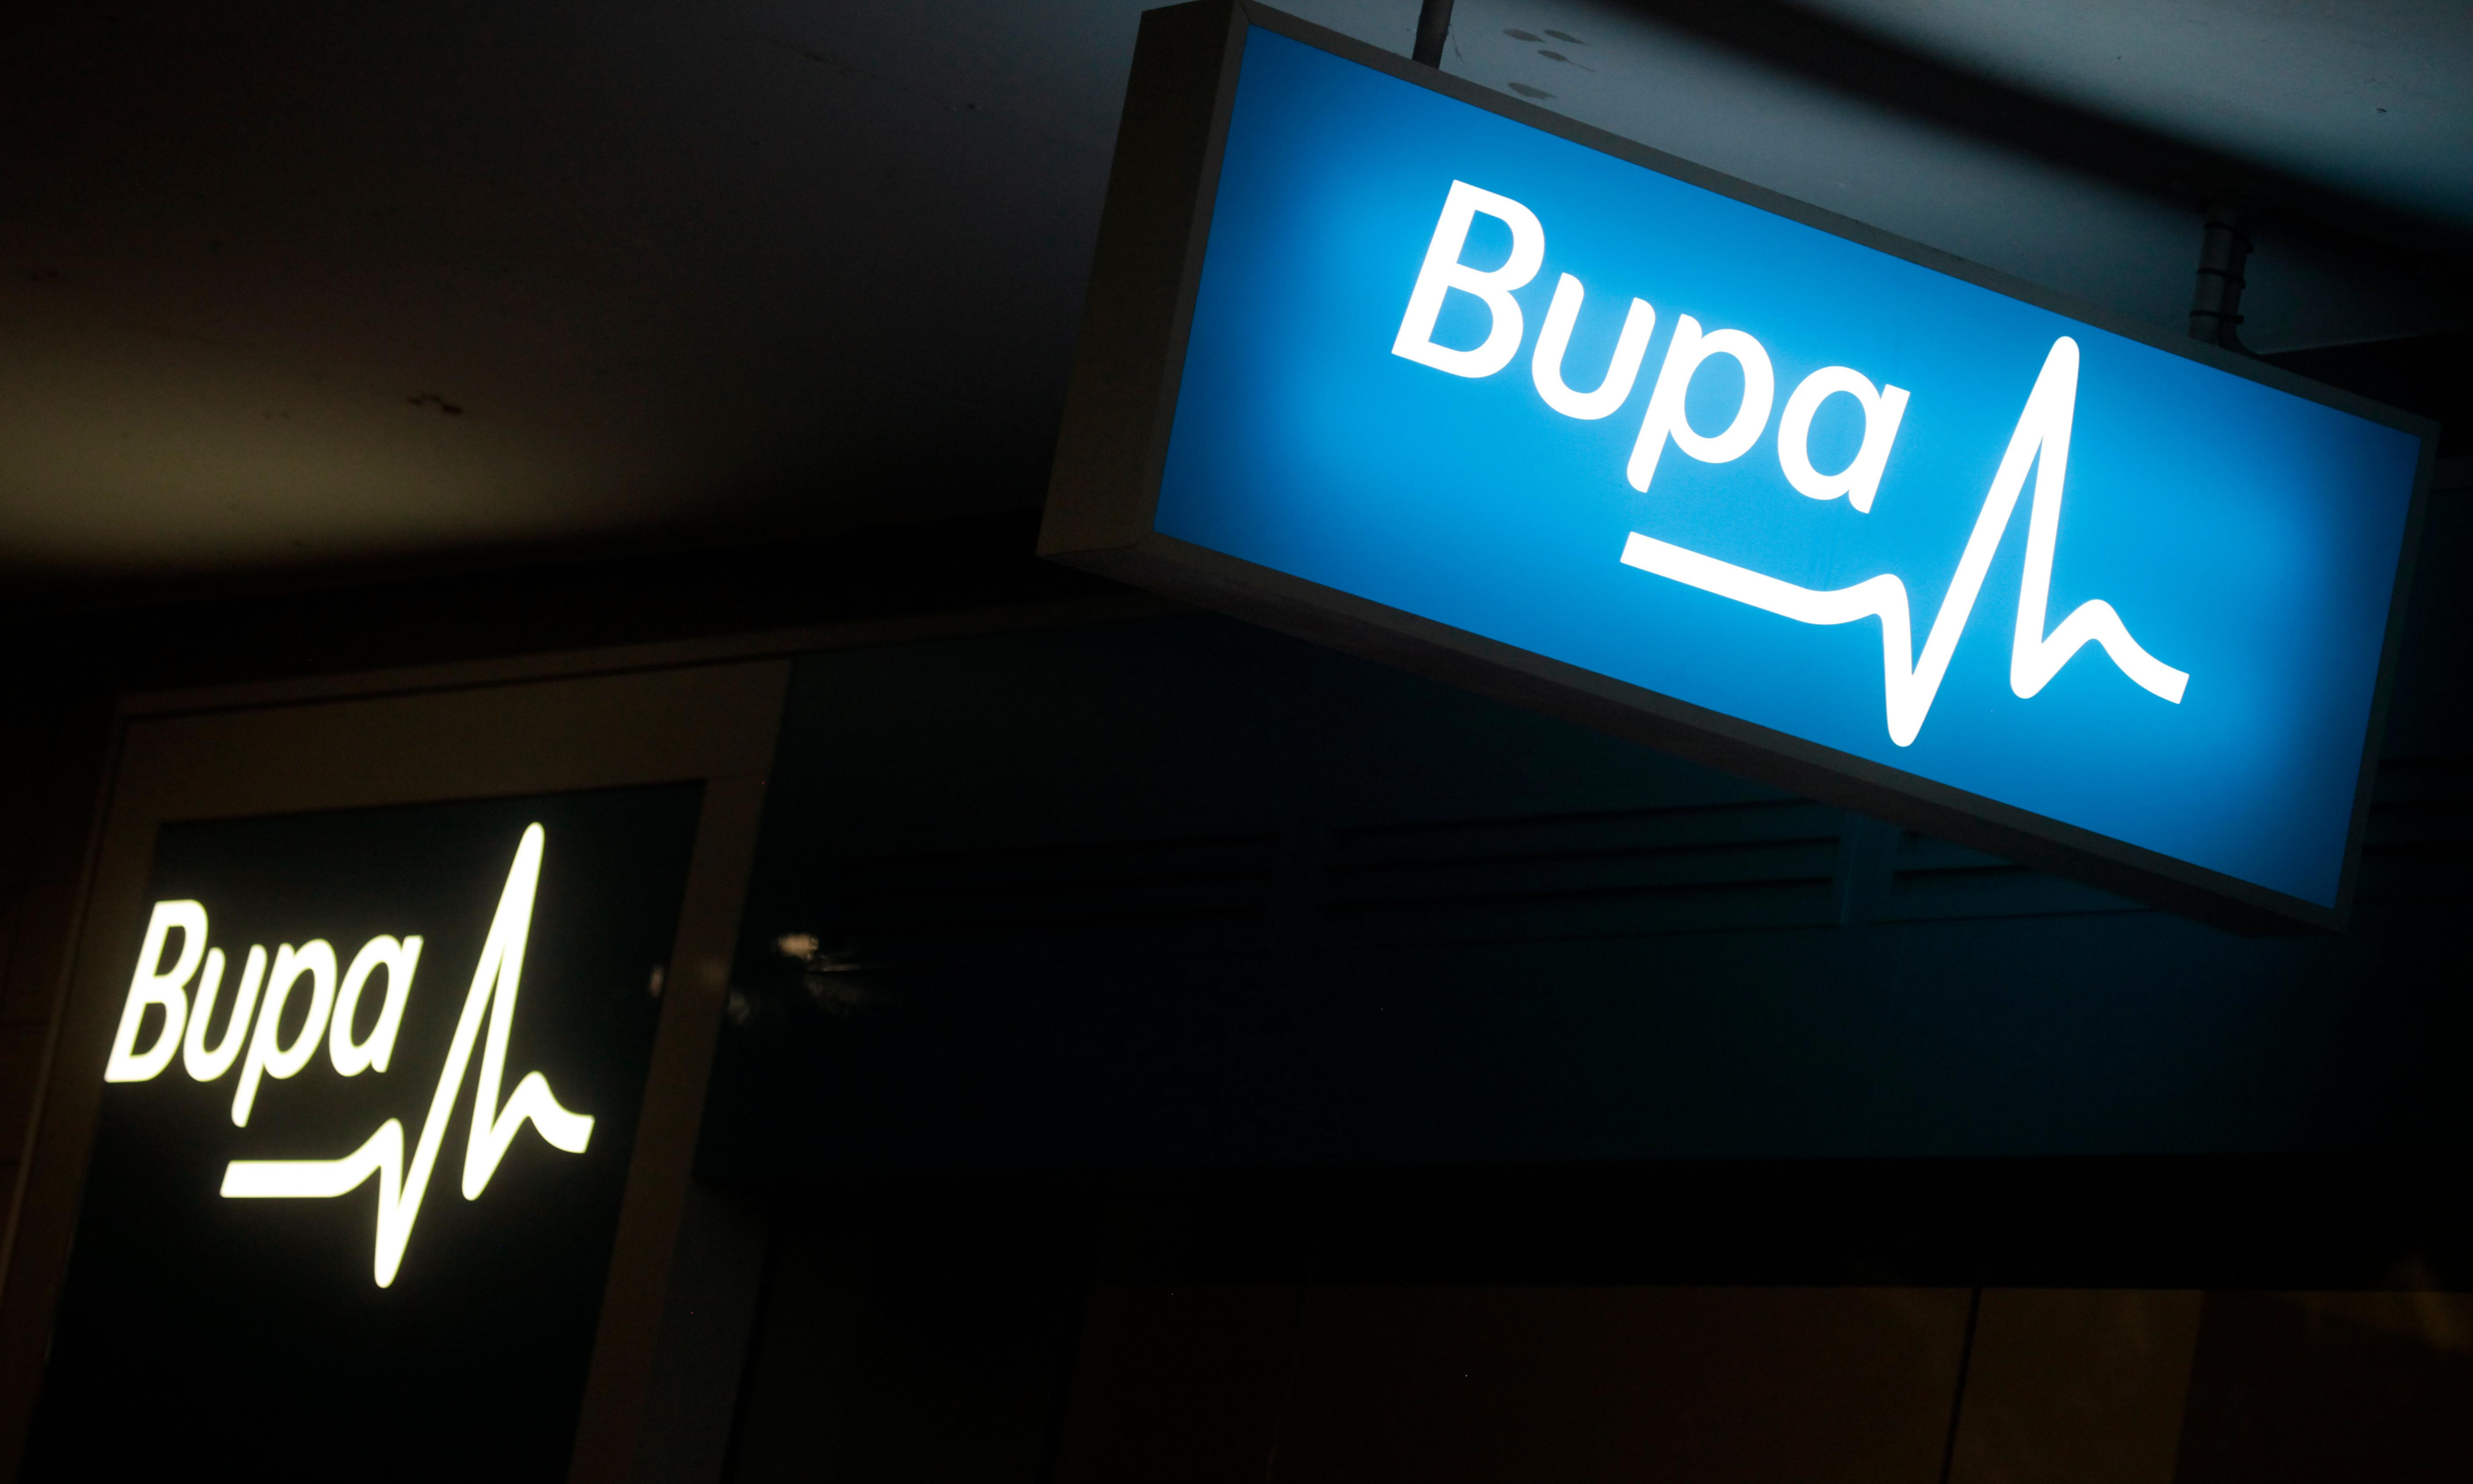 Bupa's Australian defence force contract under scrutiny amid nursing home scares